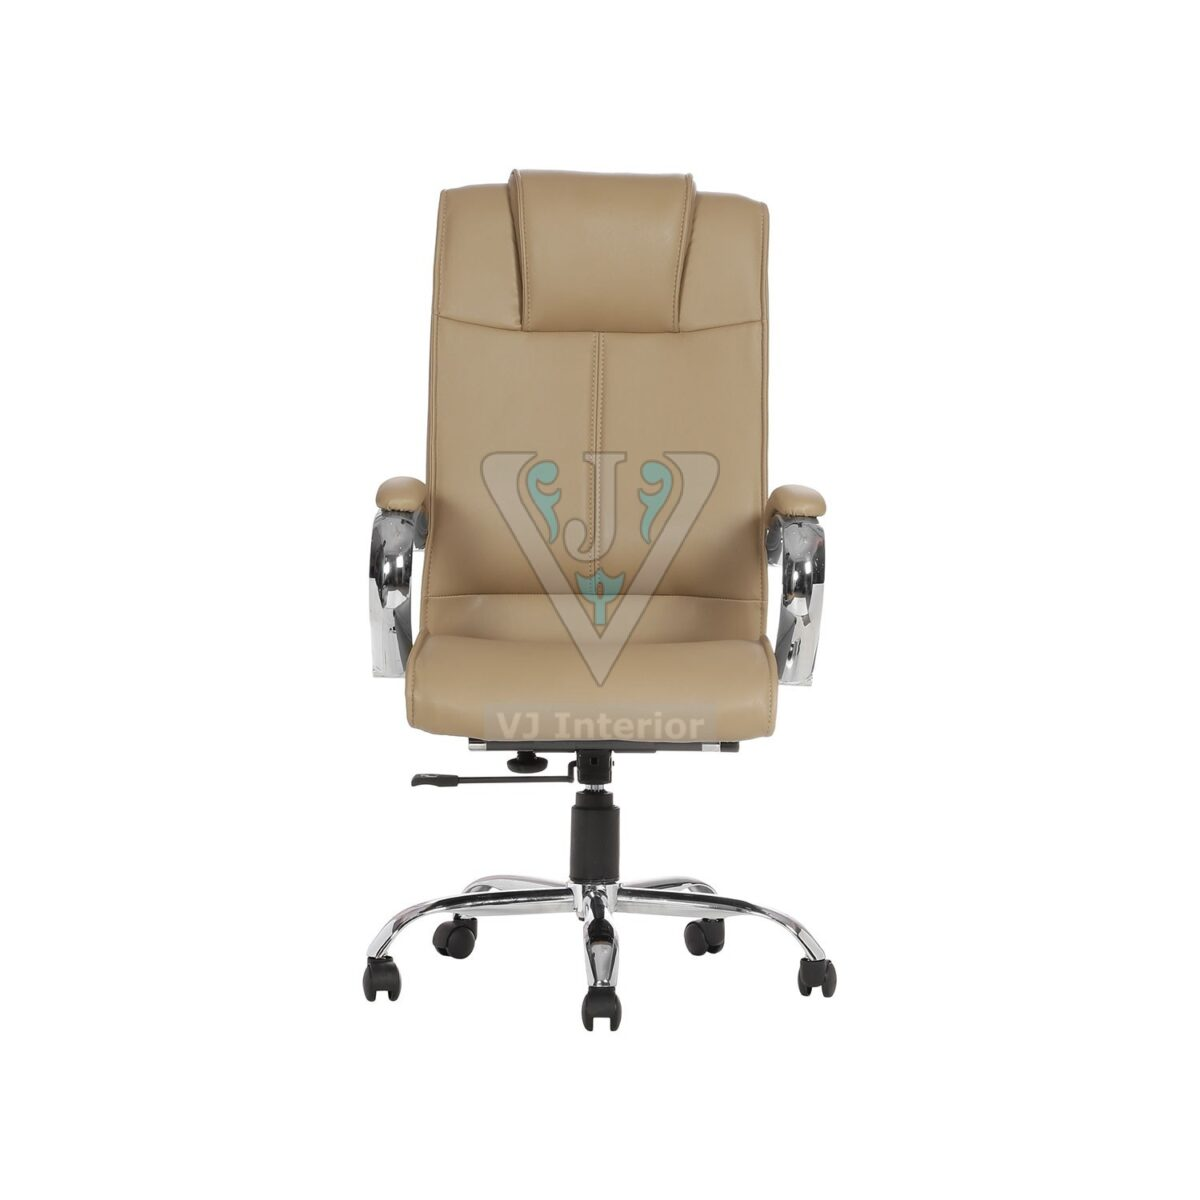 THE BRONCEAR HB EXECUTIVE CHAIR